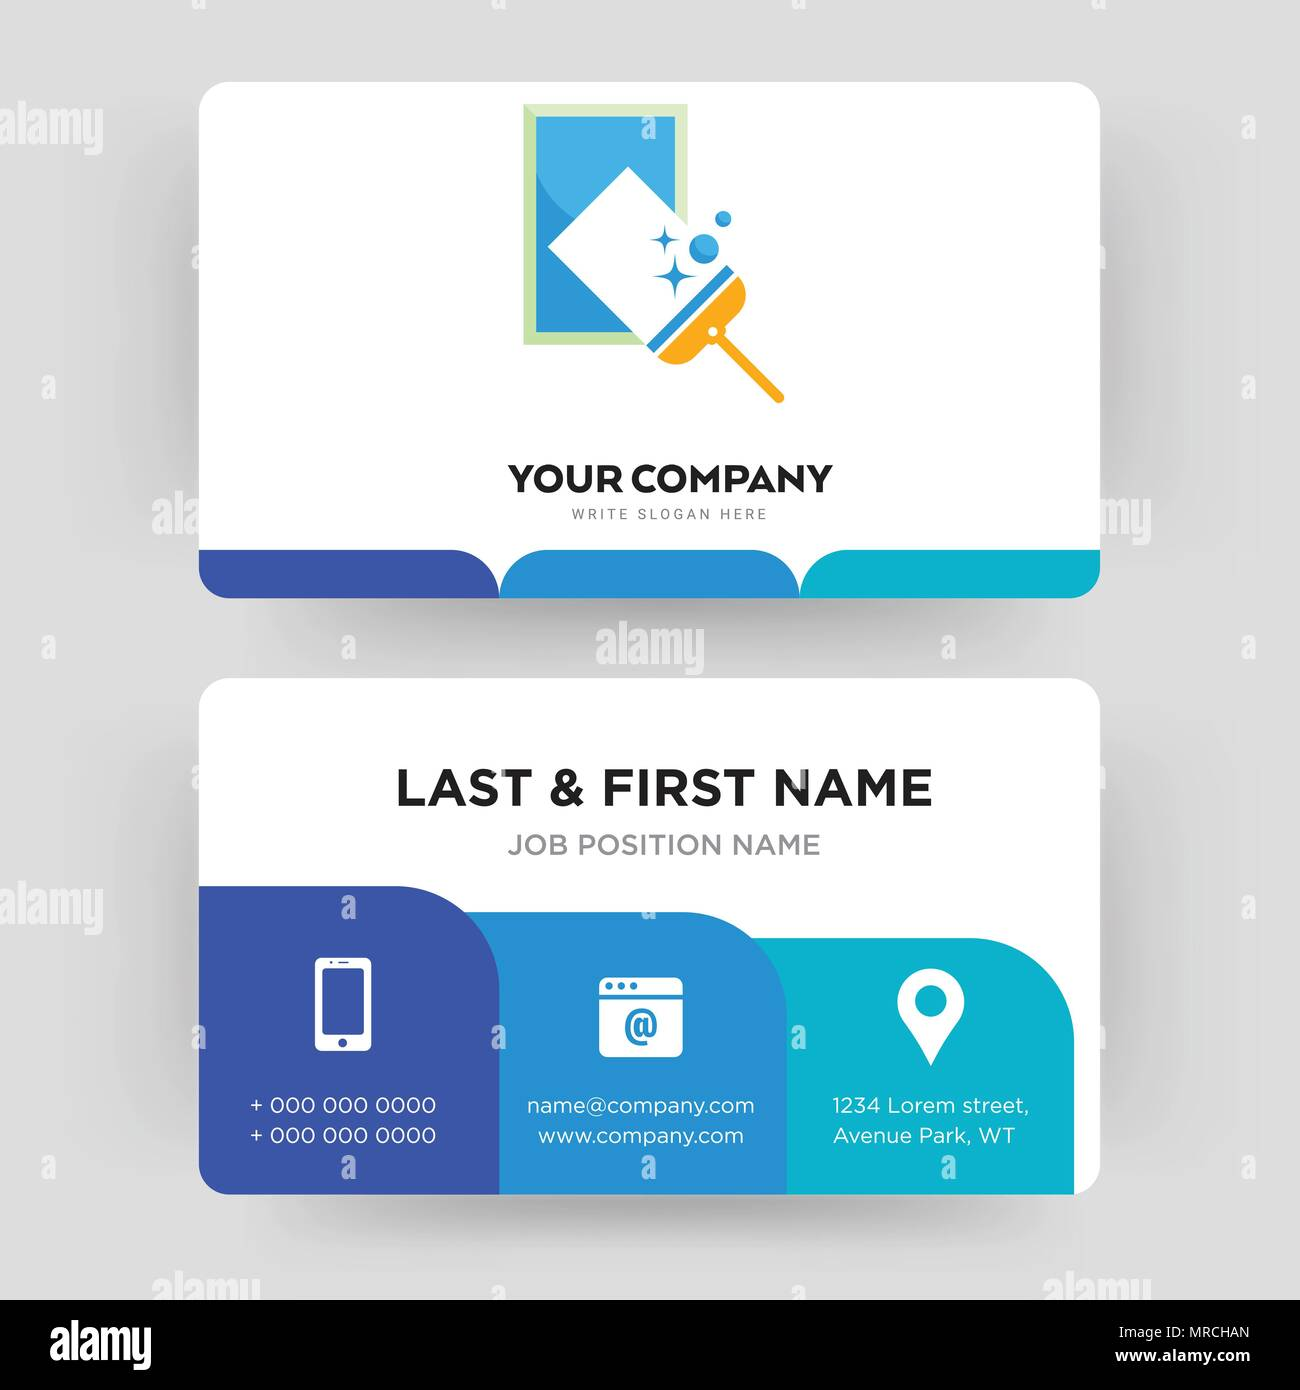 window cleaning business card design template visiting for your